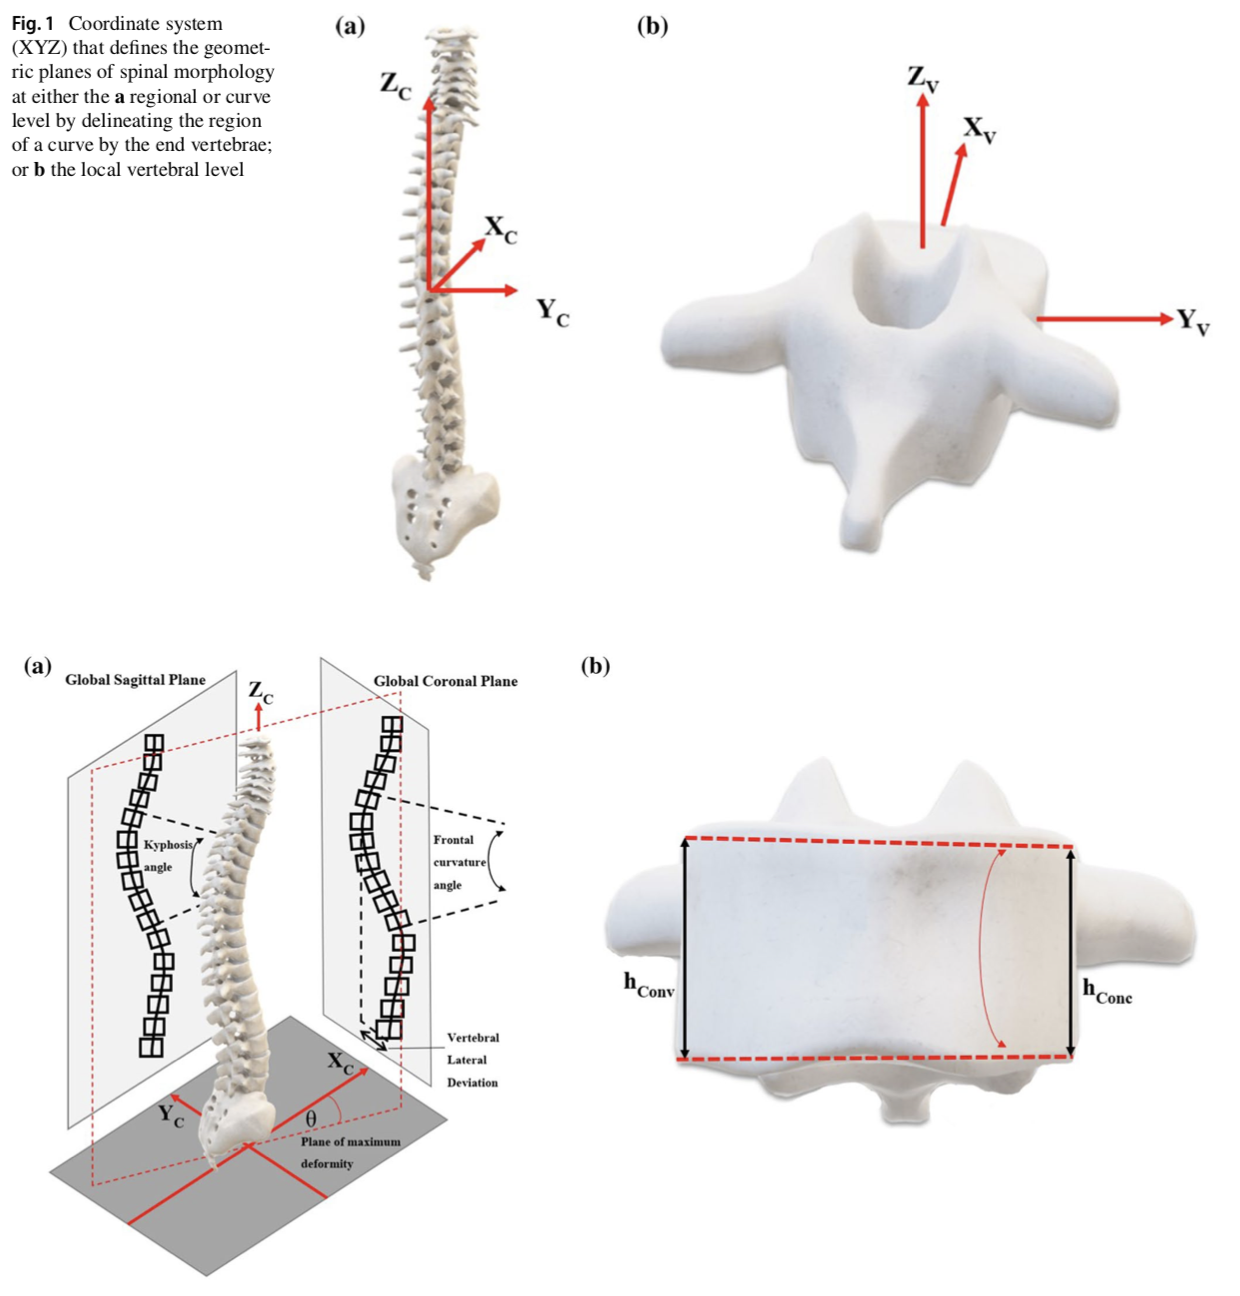 Adolescent idiopathic scoliosis 3D vertebral morphology, progression and nomenclature: a current concepts review